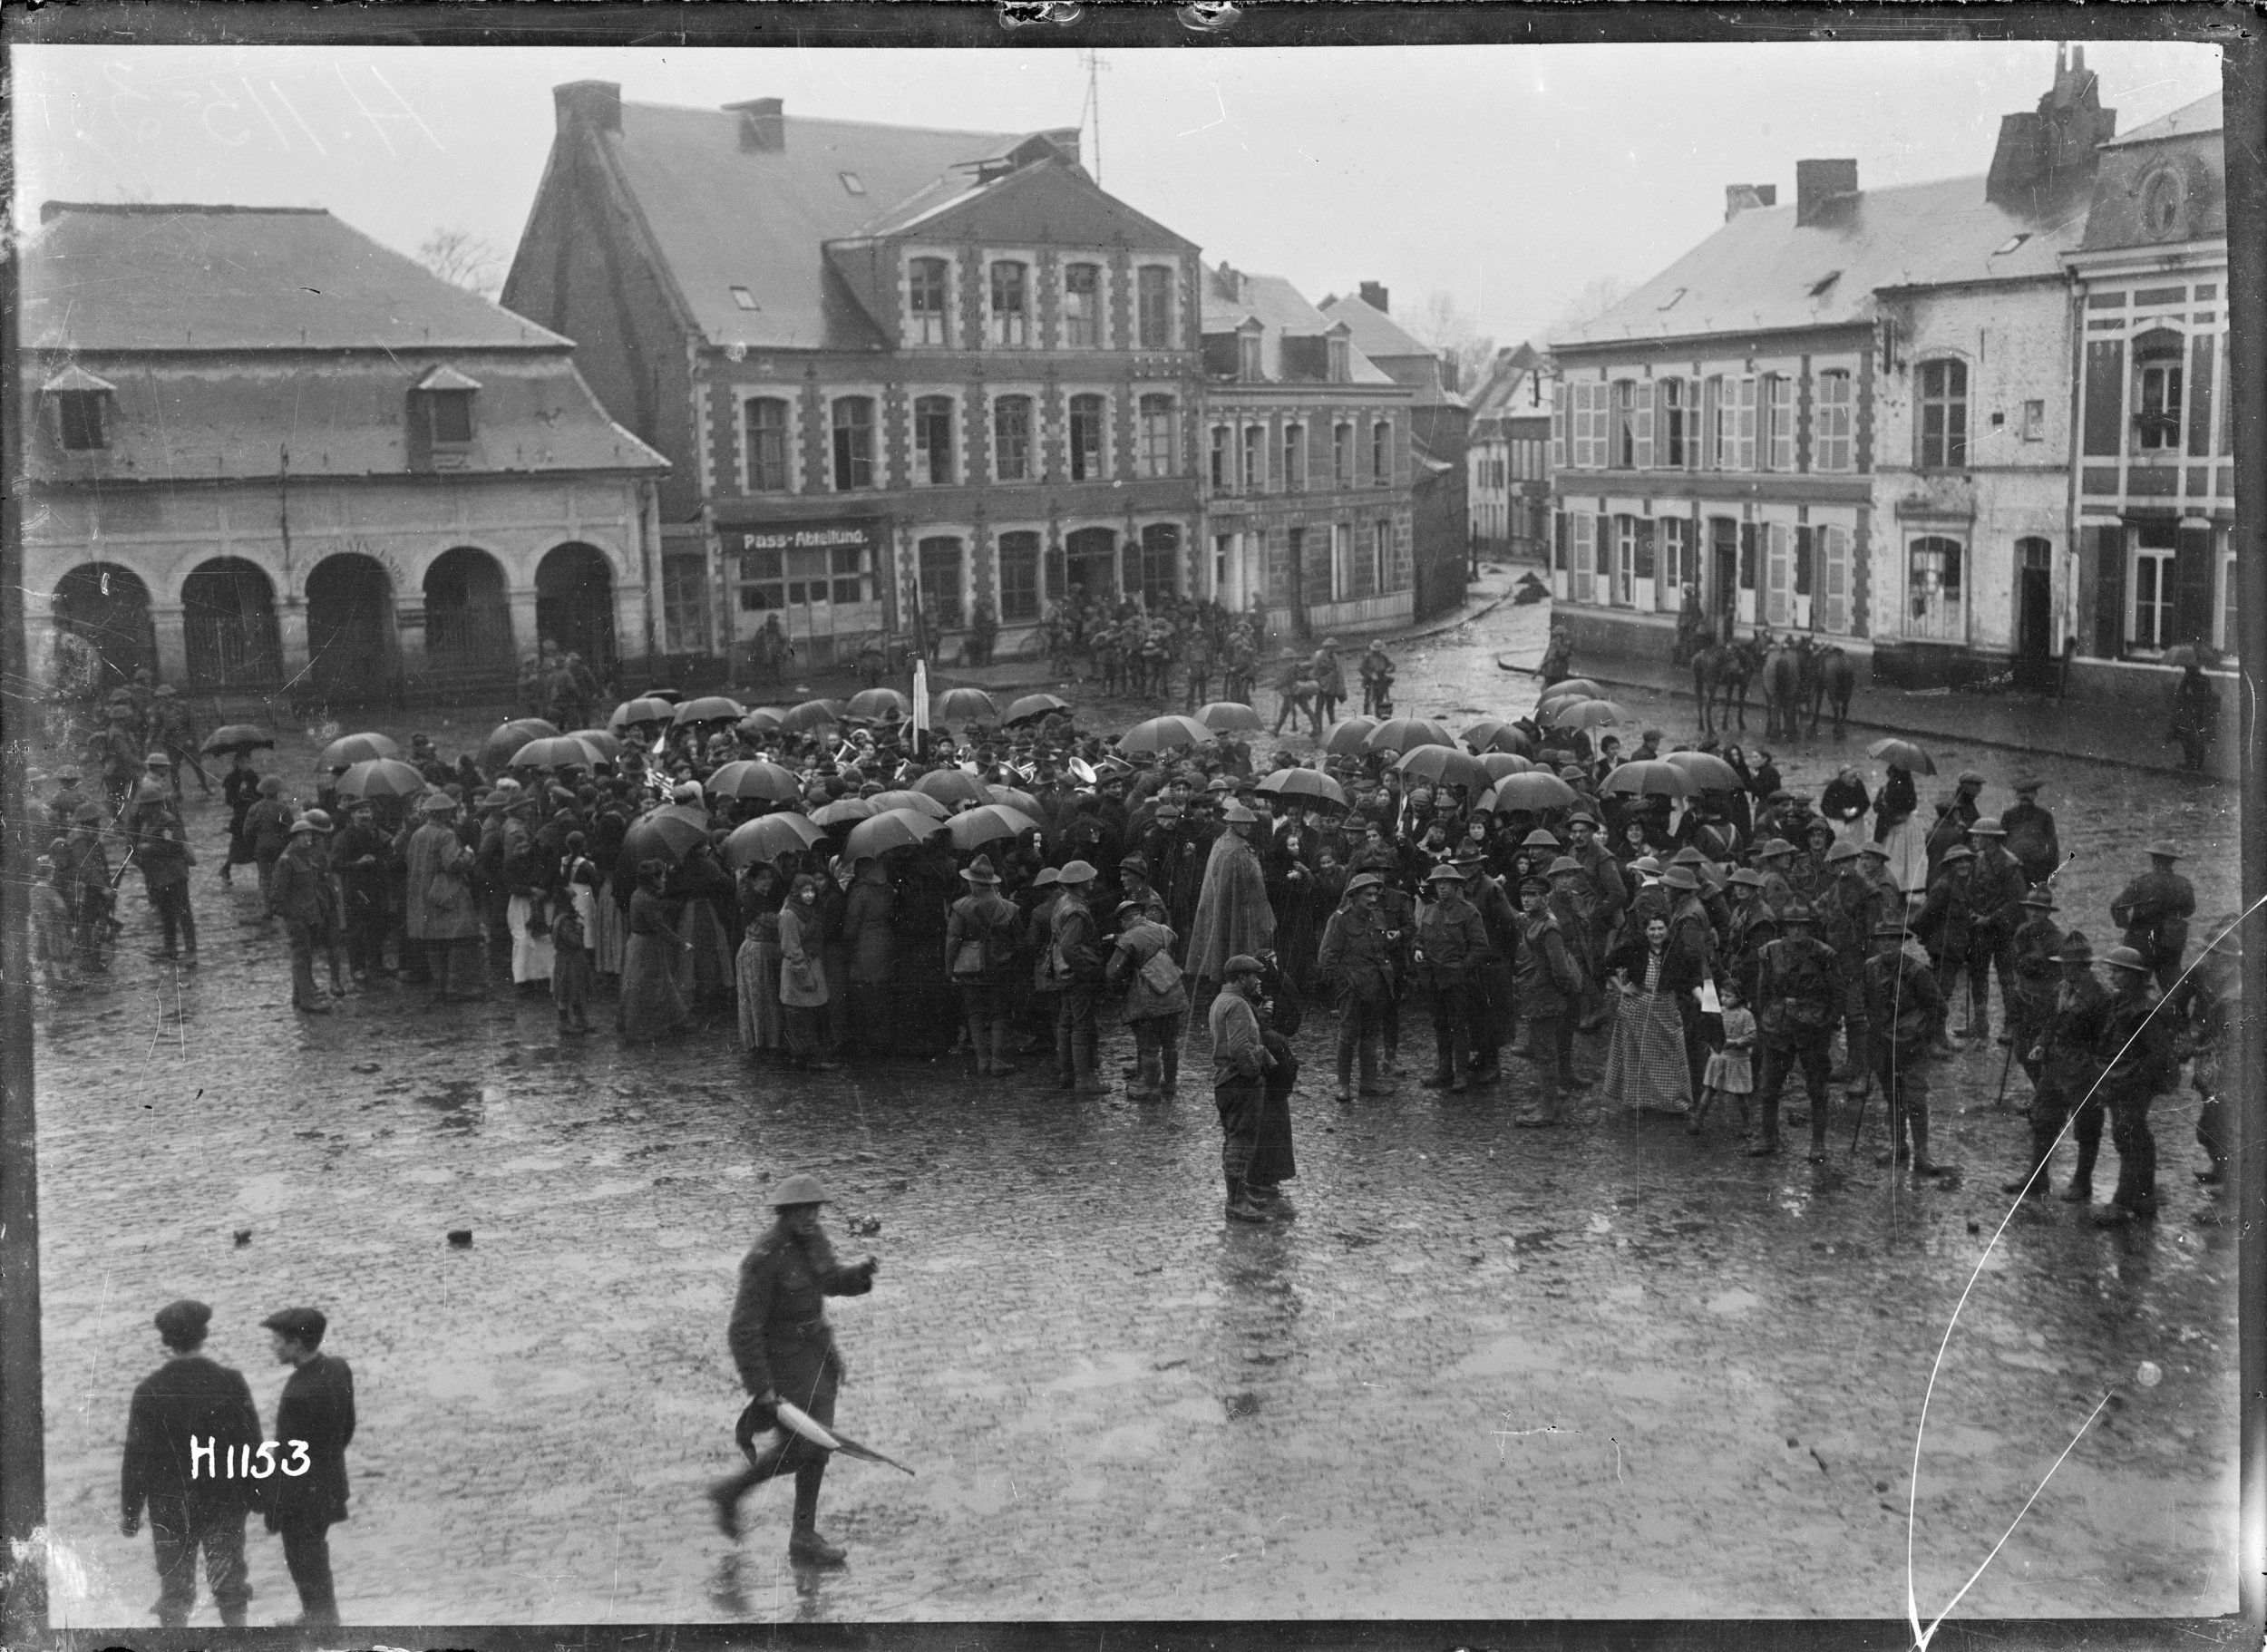 A New Zealand regimental band plays to a crowd in Le Quesnoy, the day after the town's liberation. Photographer: Henry Armytage Sanders. Royal New Zealand Returned and Services' Association Collection, Alexander Turnbull Library, Wellington, New Zealand.